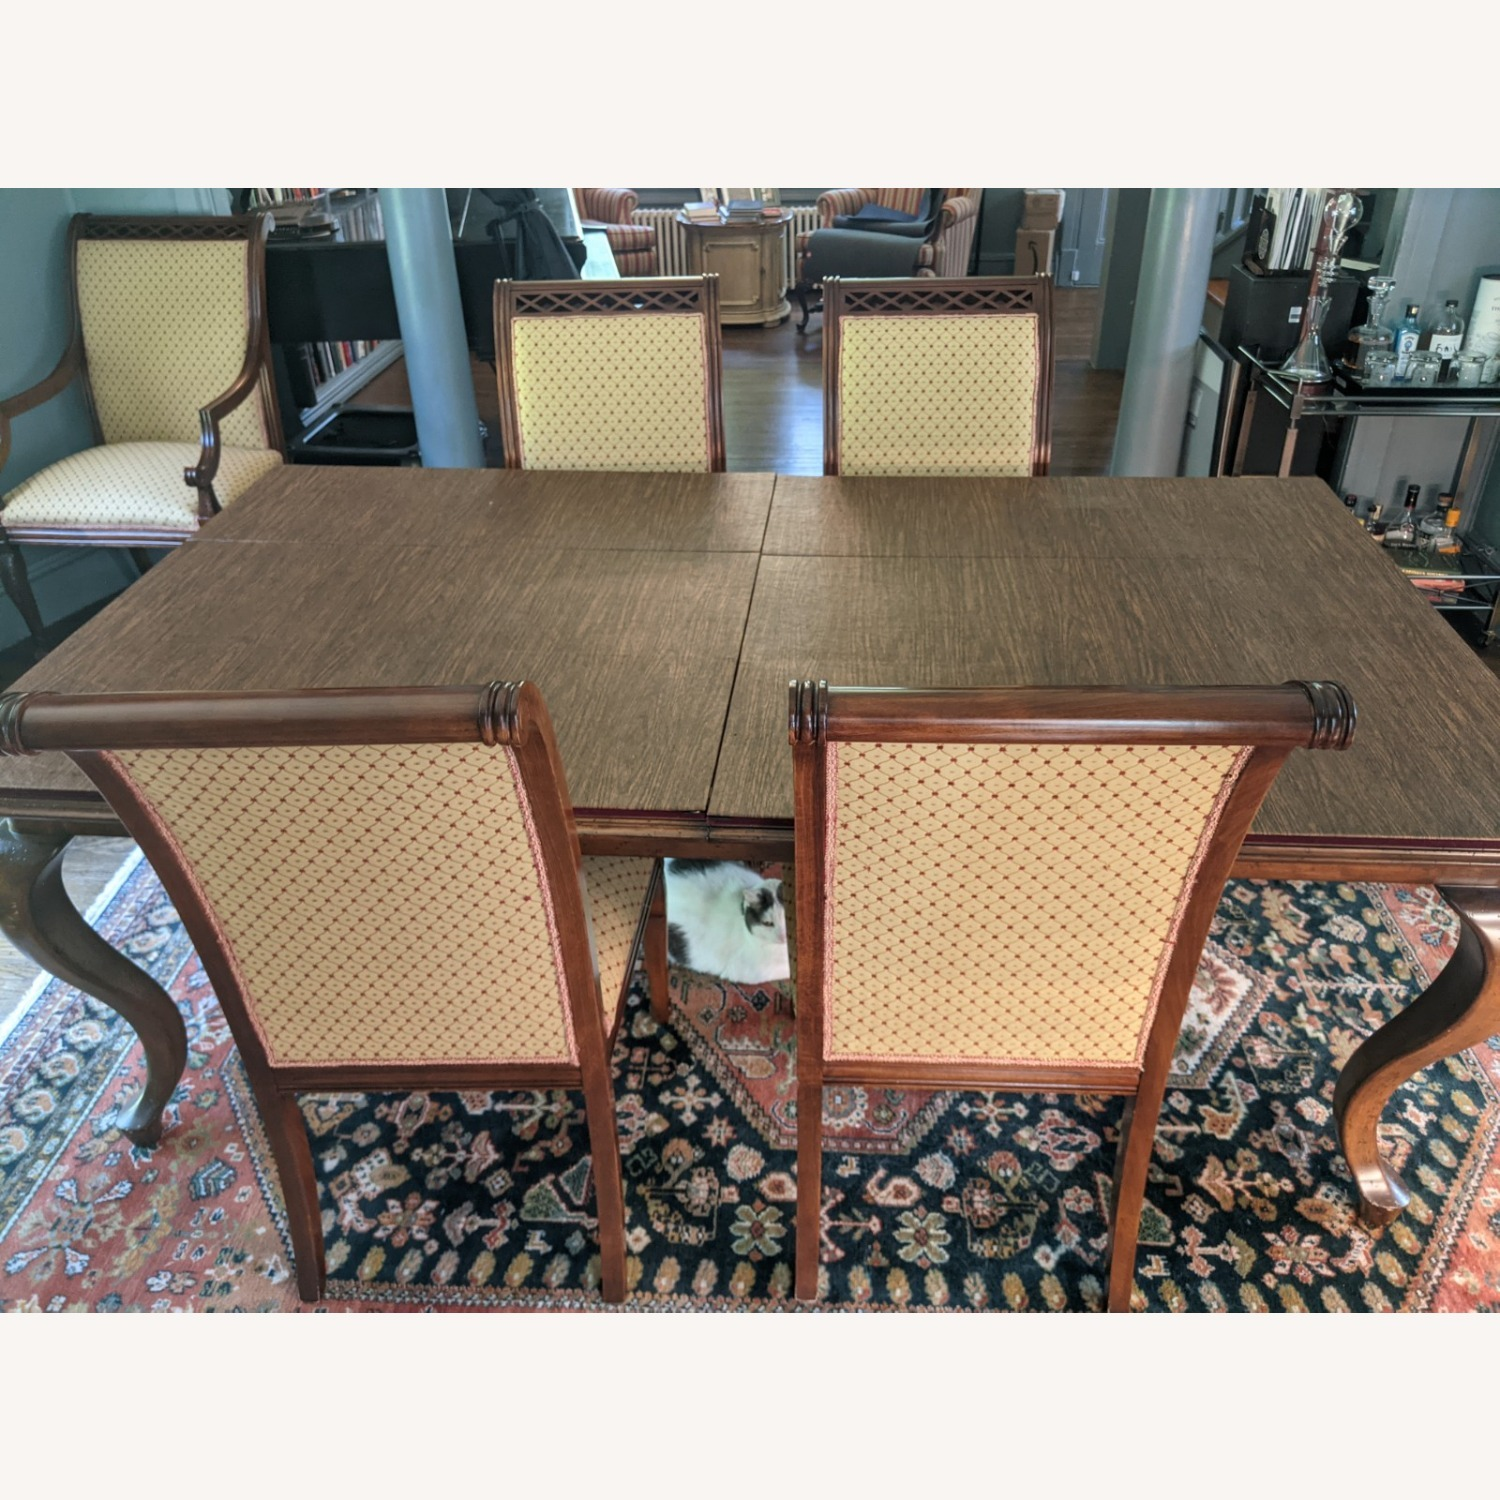 Queen Anne-style Table with Leaves and Table Pad - image-1